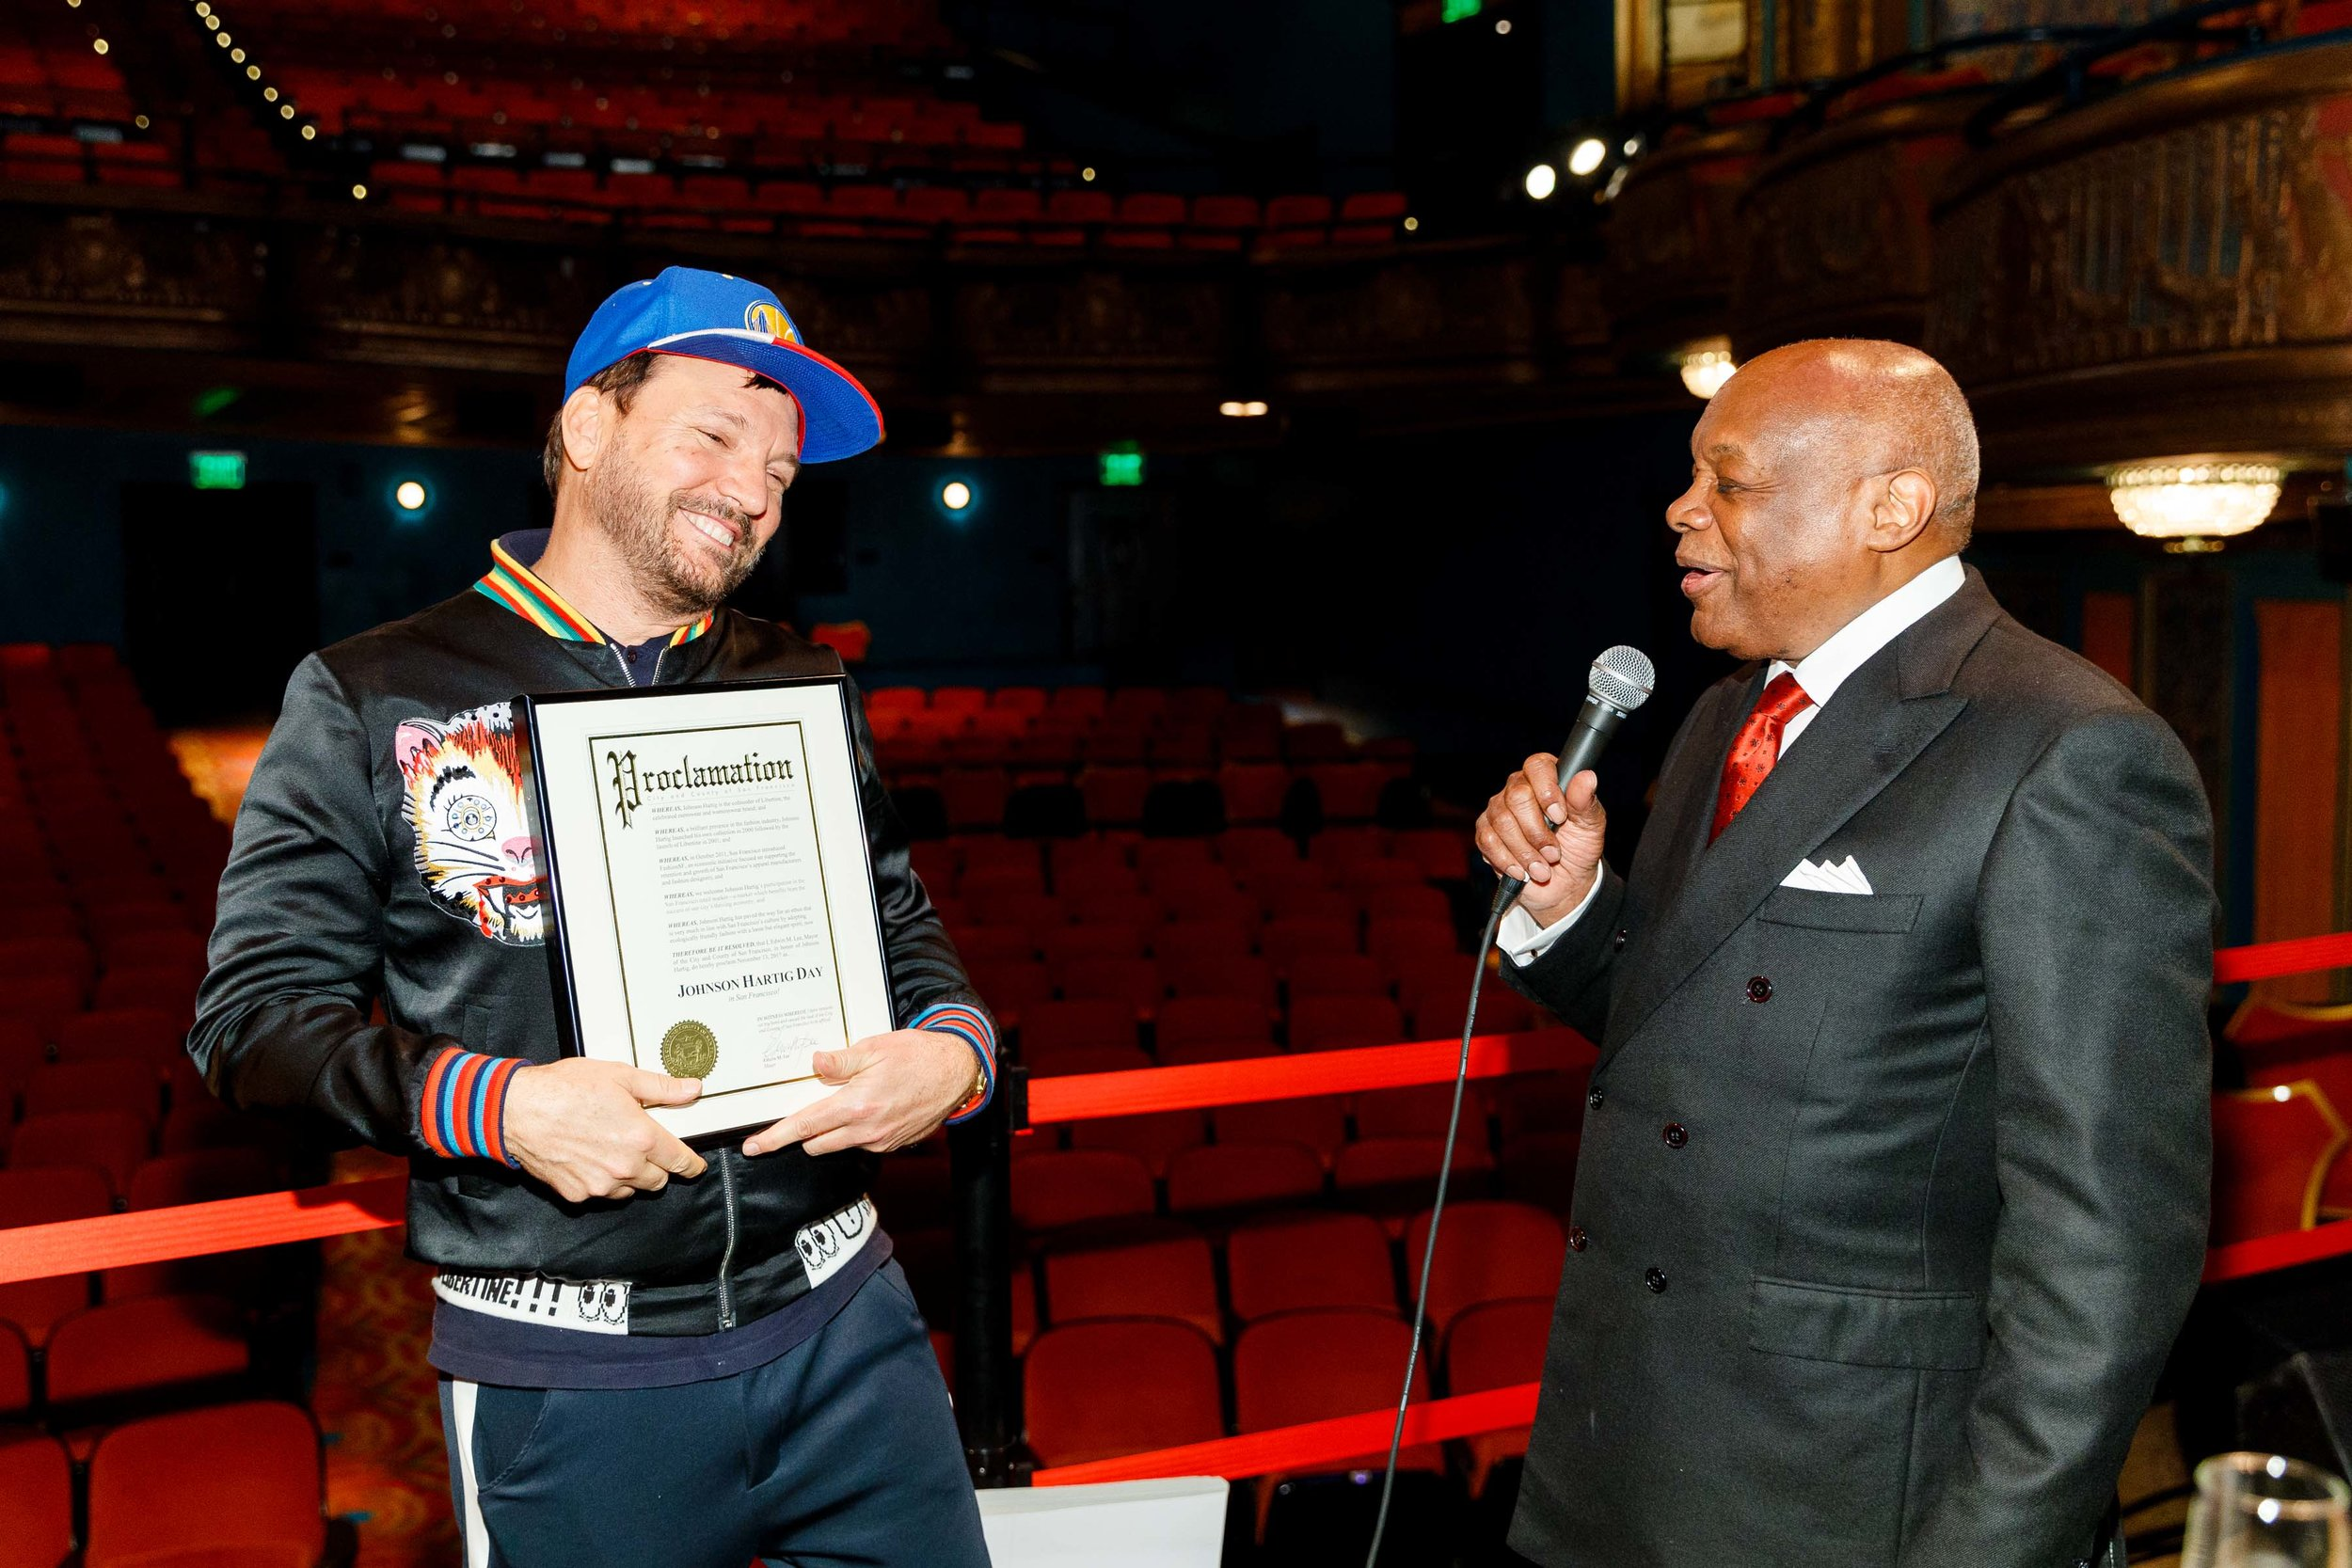 DESIGNER JOHNSON HARTIG ACCEPTING A PROCLAMATION FROM MAYOR WILLIE BROWN